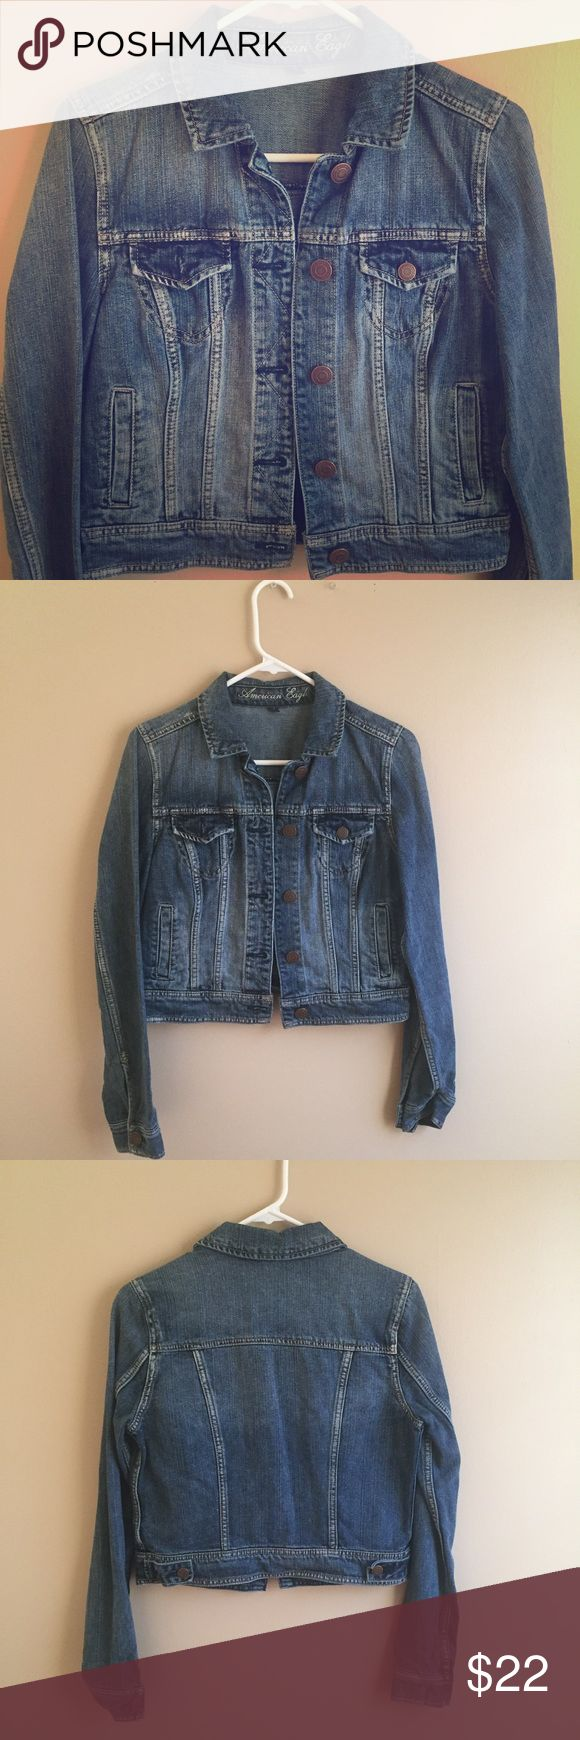 ⚡️SALE⚡️American Eagle Jean Jacket American Eagle Jean Jacket, excellent condition, worn less than a handful of times American Eagle Outfitters Jackets & Coats Jean Jackets